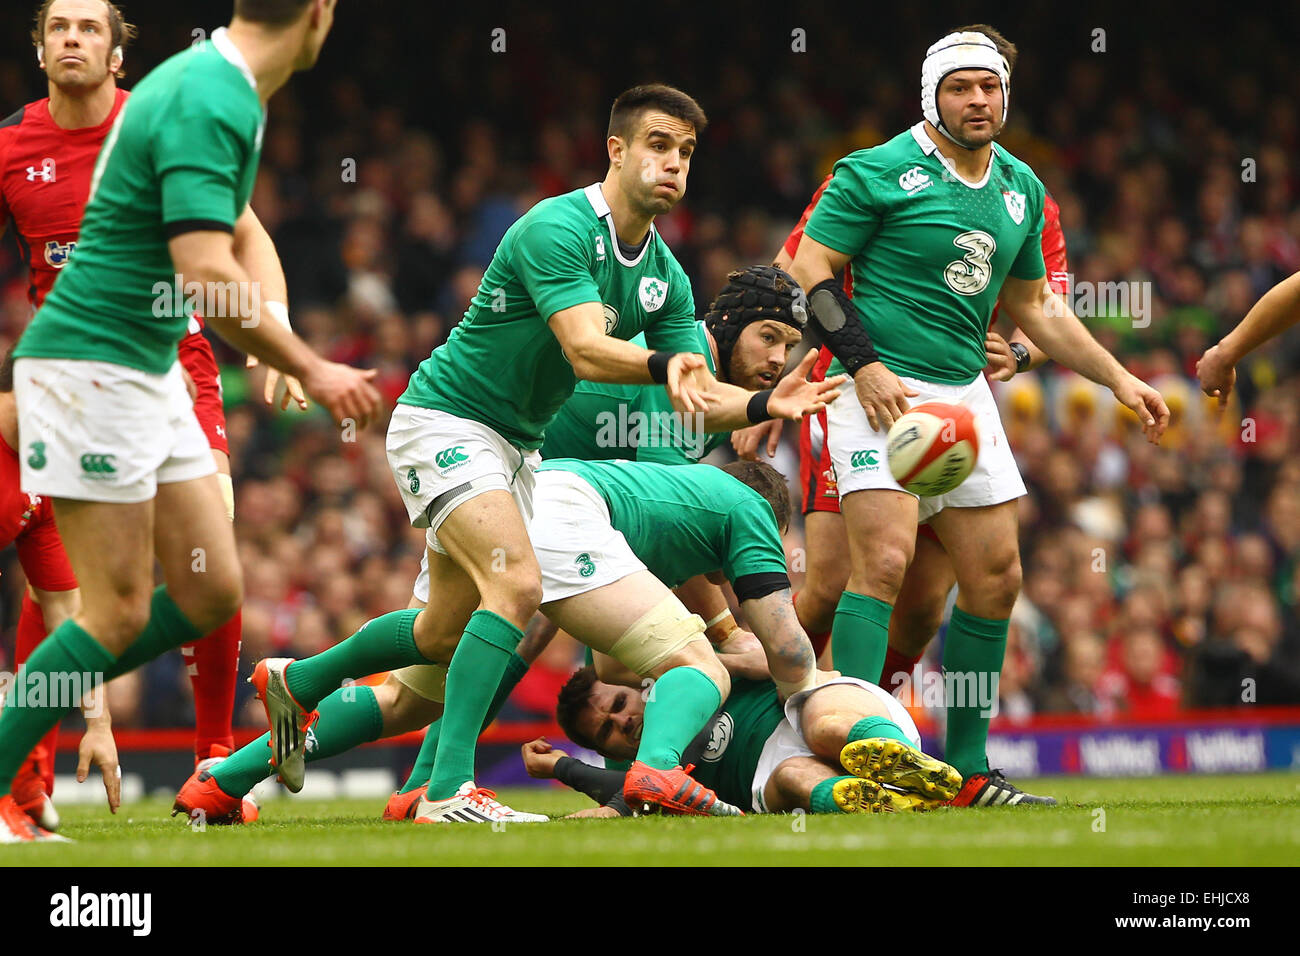 Cardiff, Wales. 14. März 2015. 6 Nationen internationale Rugby-Meisterschaft. Wales vs. Irland. Conor Murray Stockbild